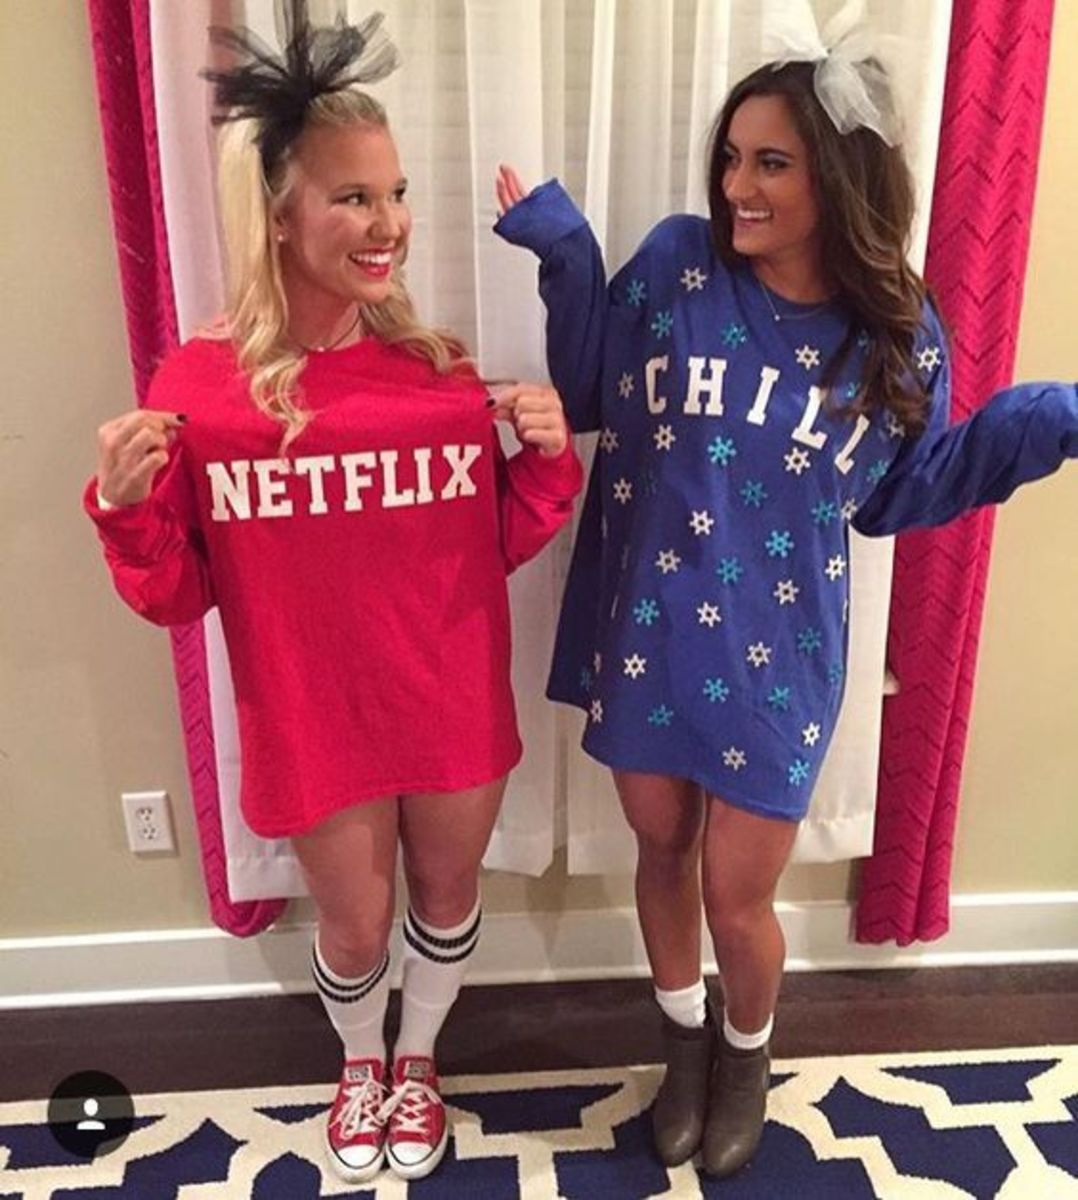 Netflix and Chill has been a commonly used term in the millennial era. This is another easy homemade costume that will also be a hit at a Halloween party!